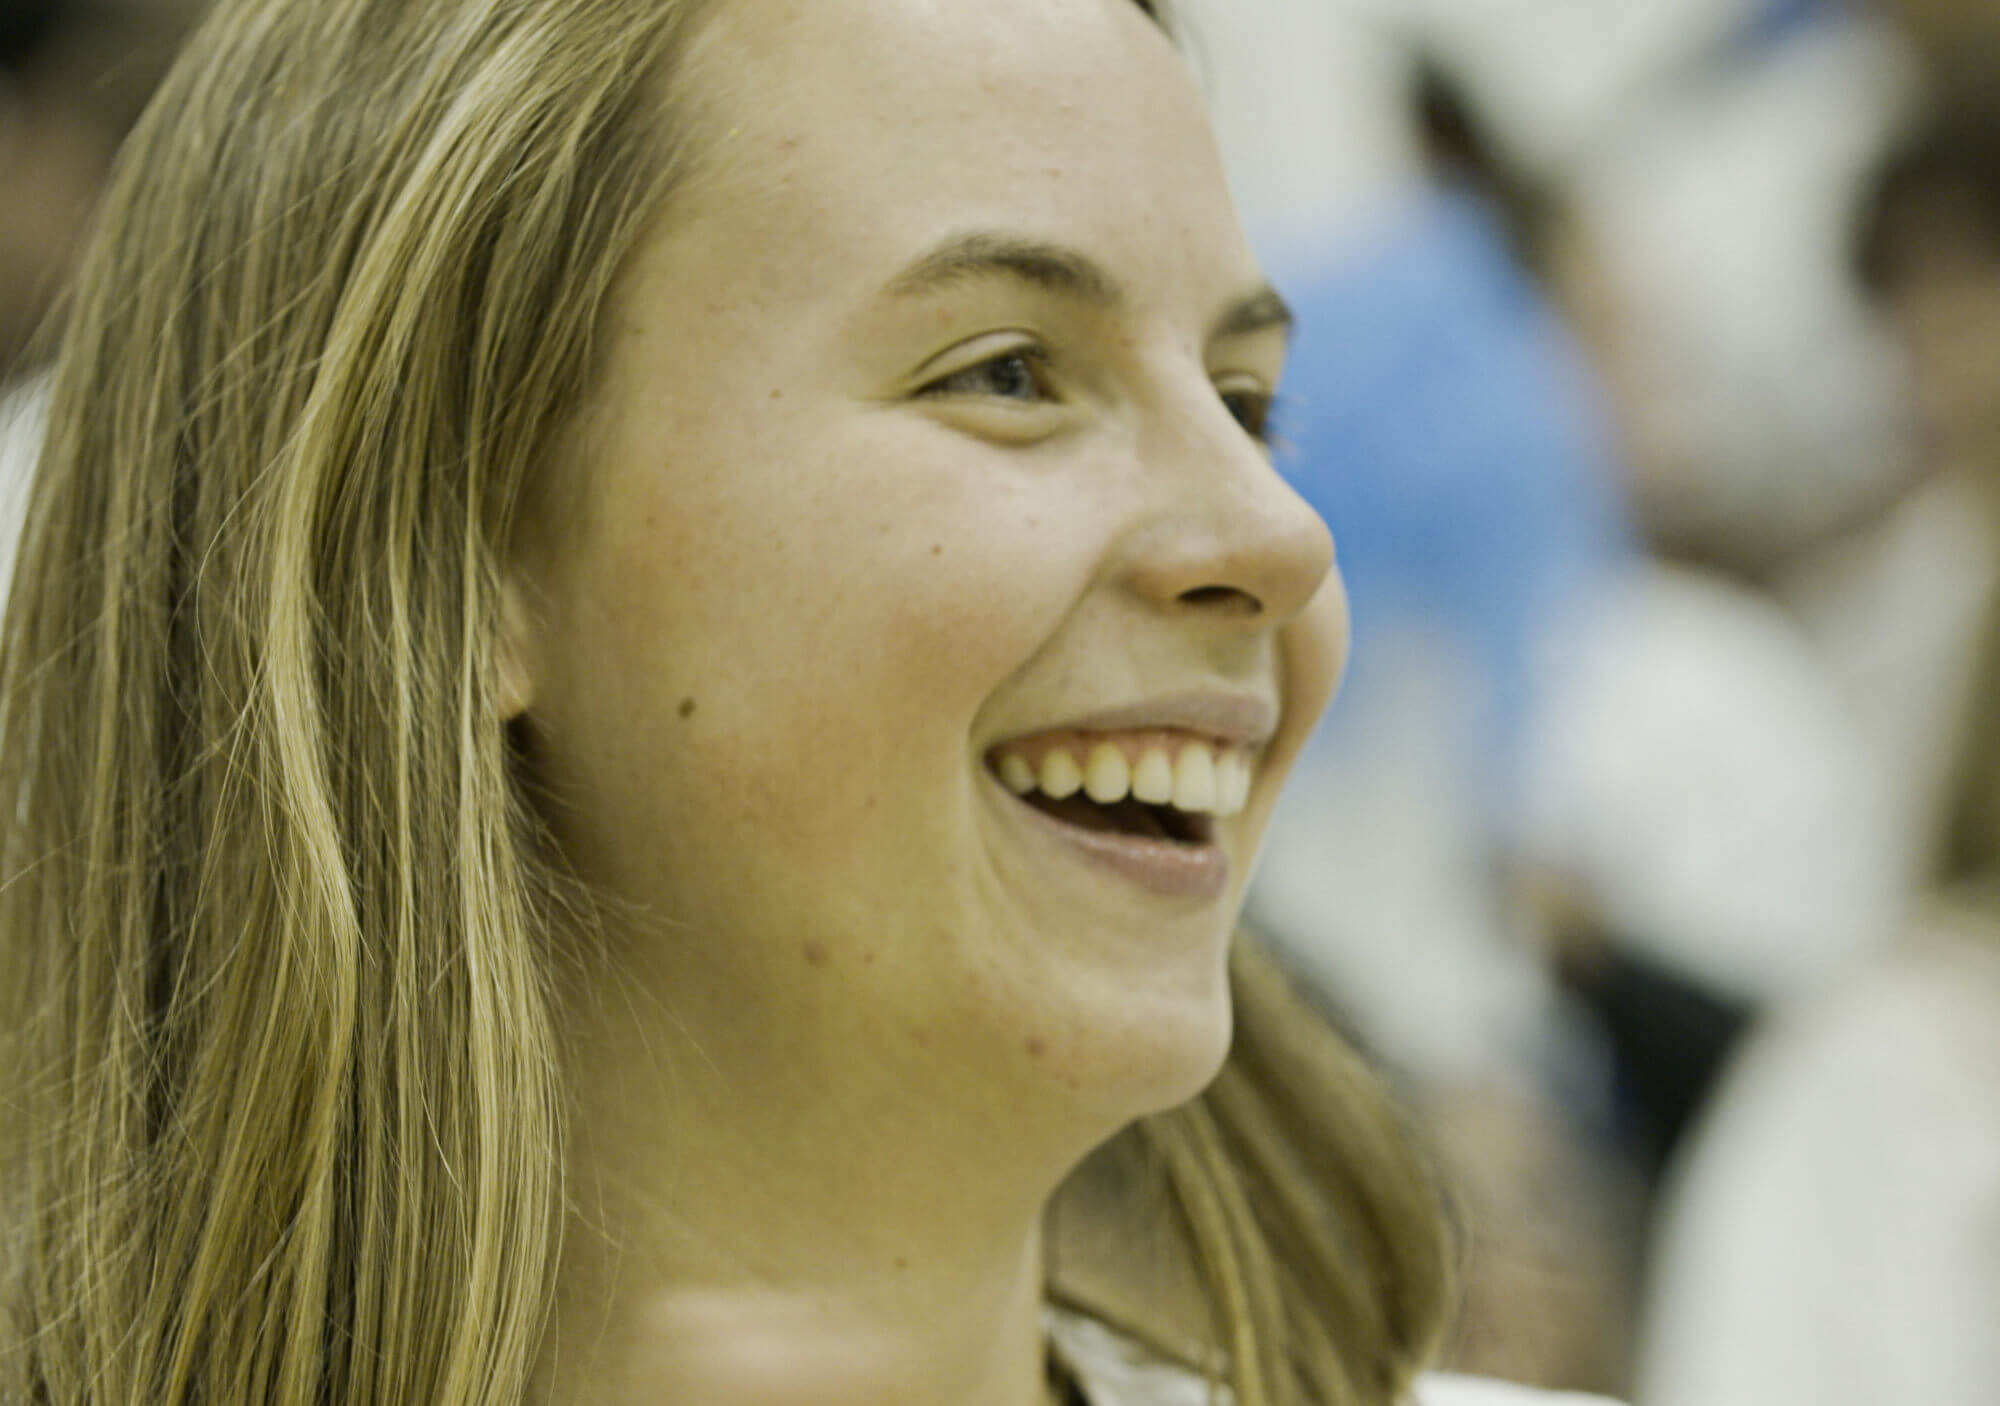 Zoie, a youth leader from Fife High School, WA.